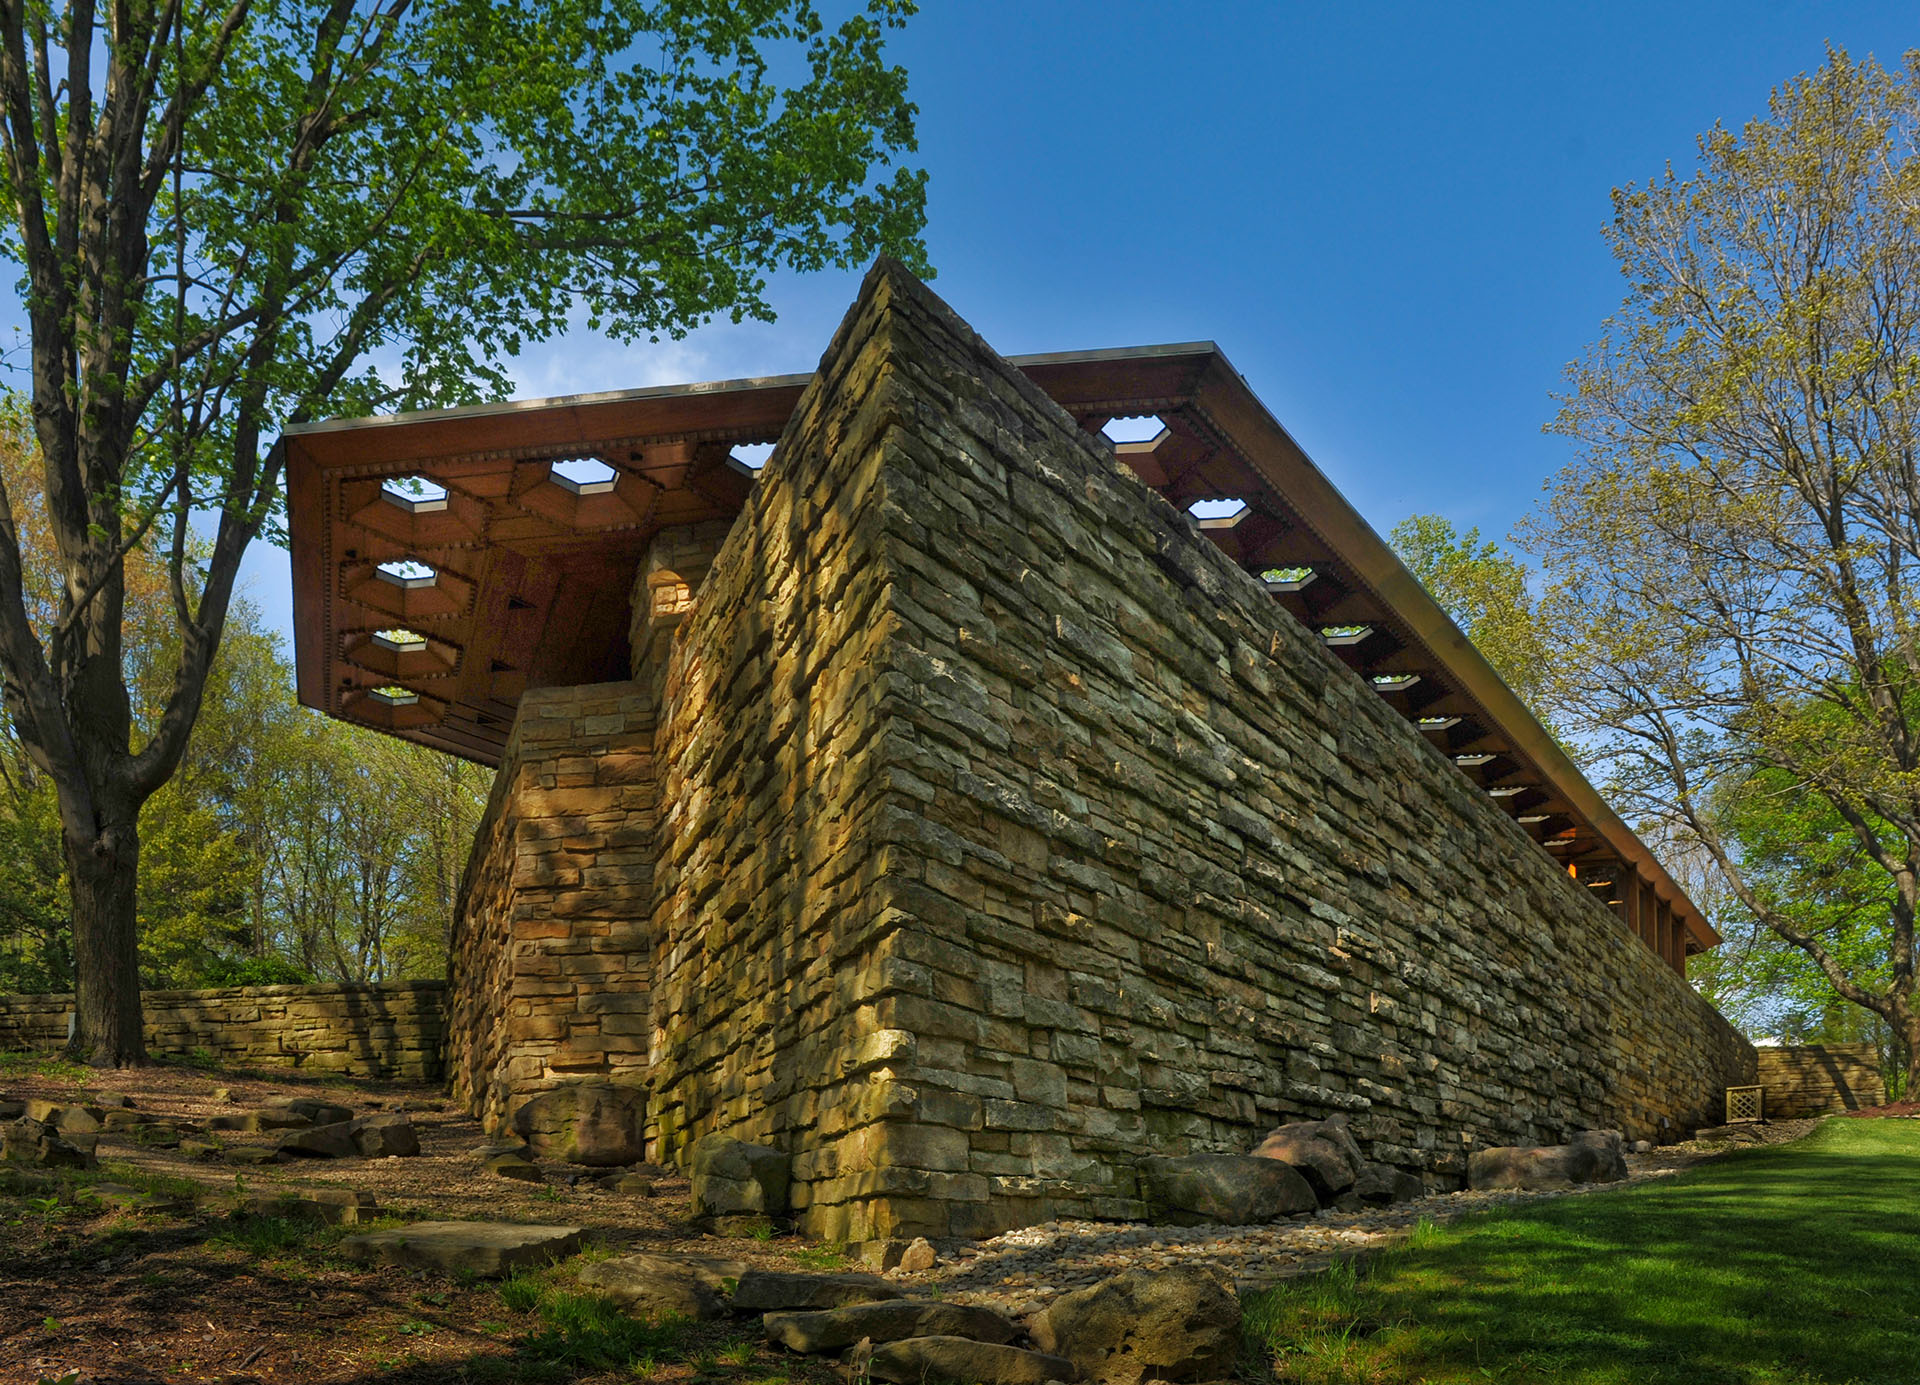 Frank Lloyd Wright was born in Richland Center, Wis., on June 8, , the son of William Carey Wright, a preacher and a musician, and Anna Lloyd Jones, a teacher whose large Welsh family had settled the valley area near Spring Green, Wisconsin.